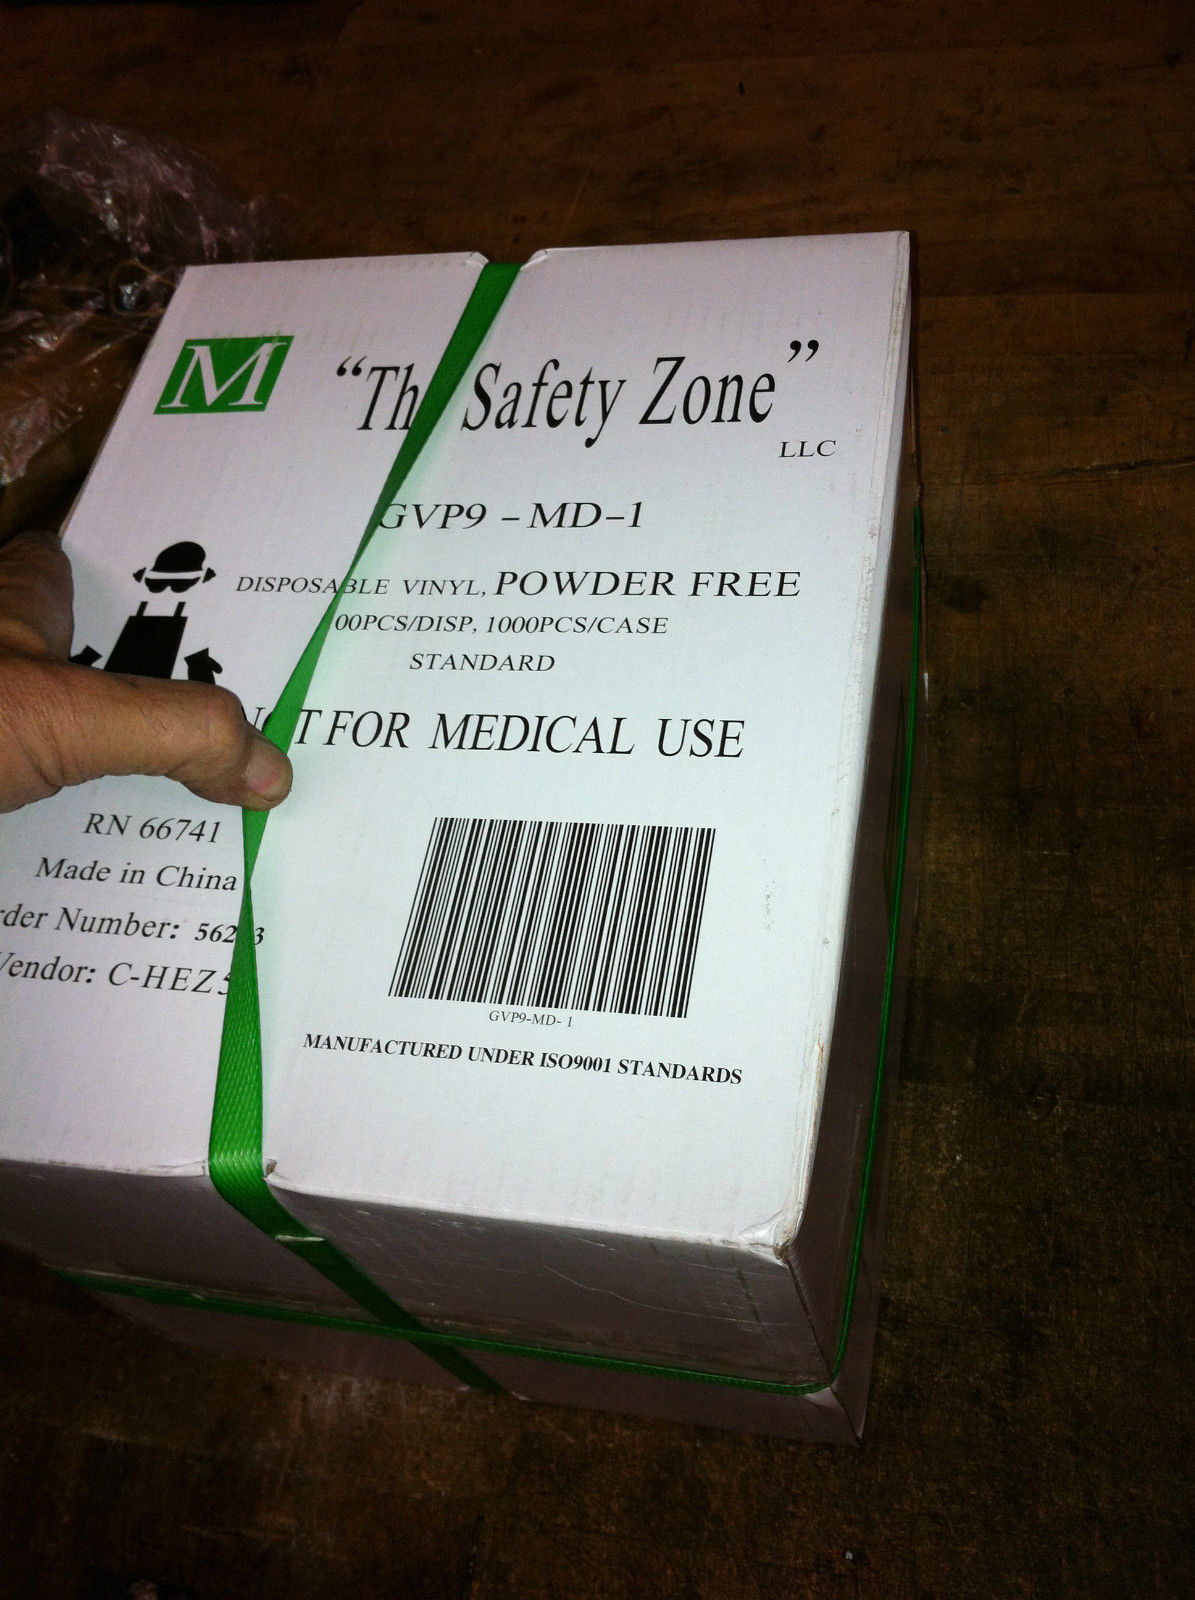 1000 Safety Zone GVP9-MD-1 Powder Free Vinyl Gloves good for food service MEDIUM